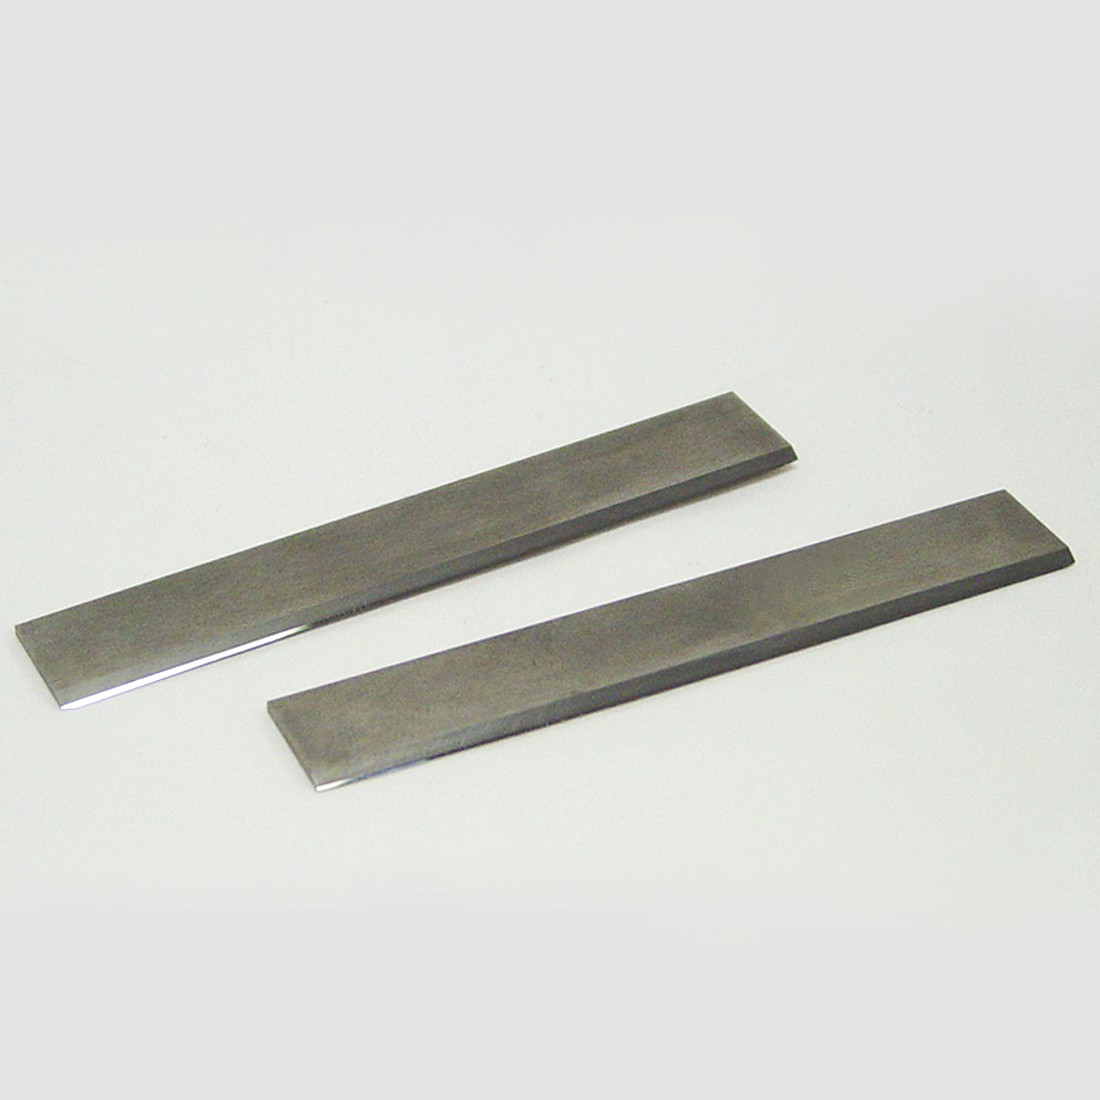 Disposable Tungsten Carbide Blades